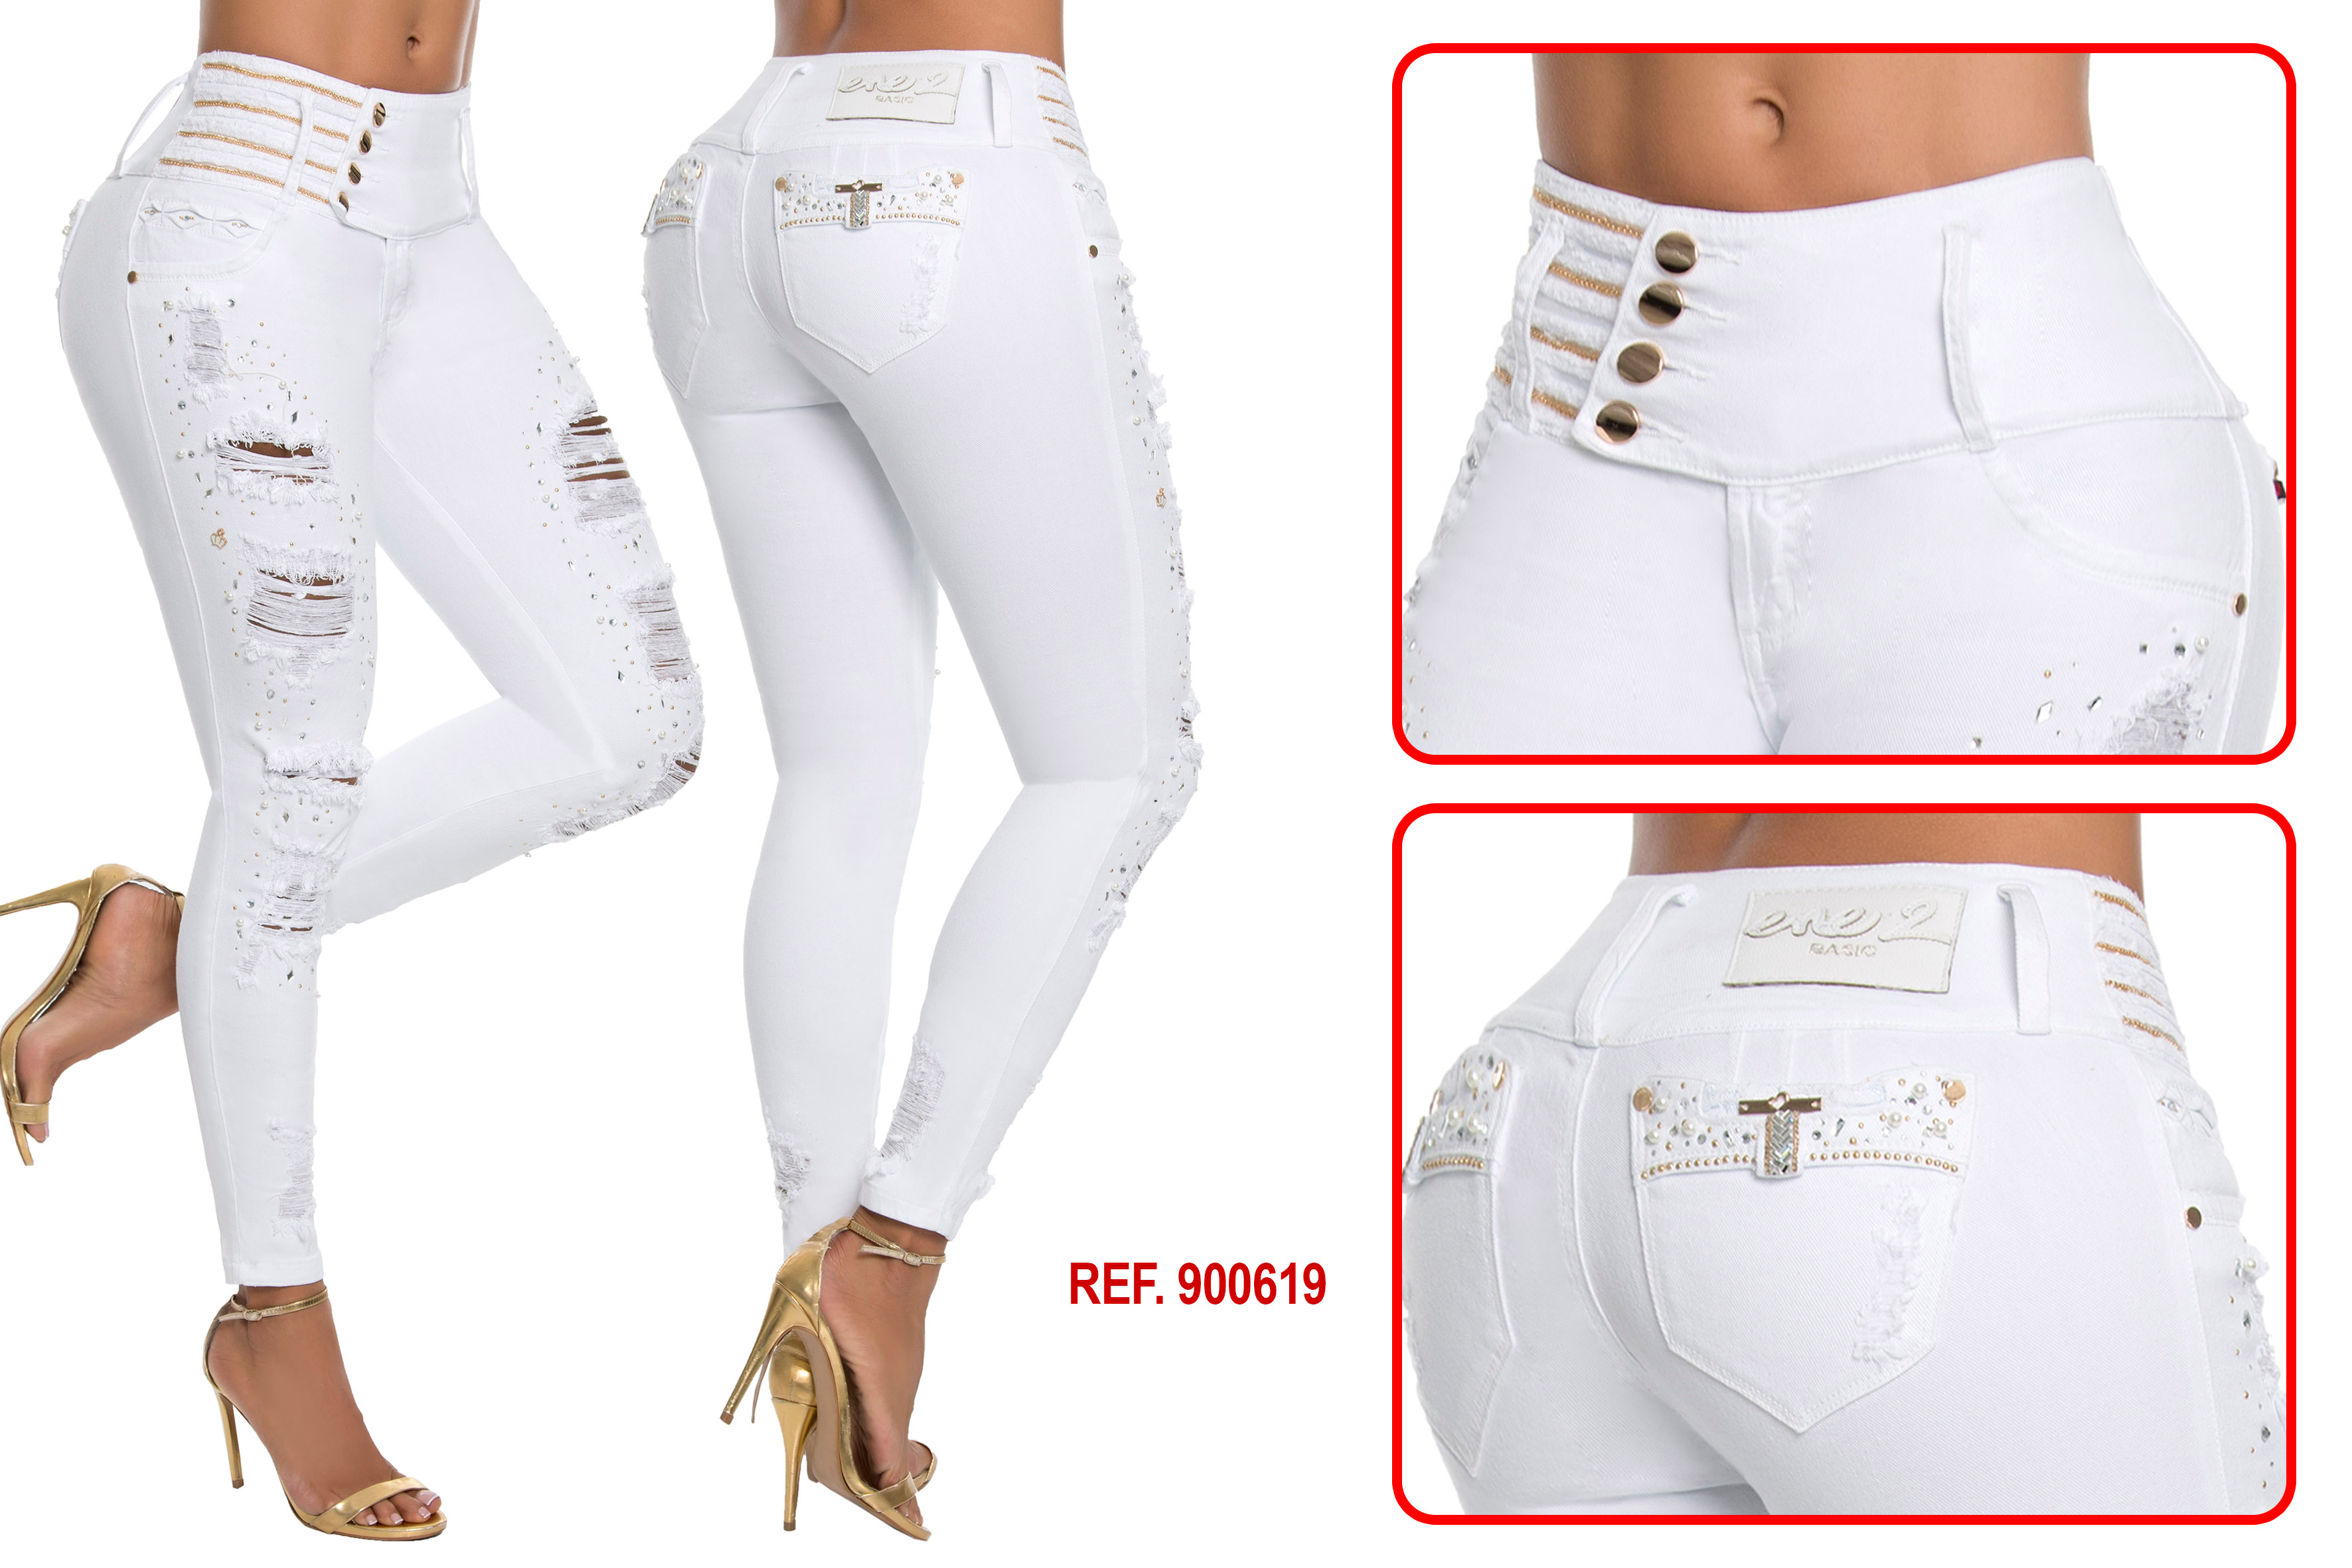 High Waisted Butt lifting Cropped Jeans Ref: 900619